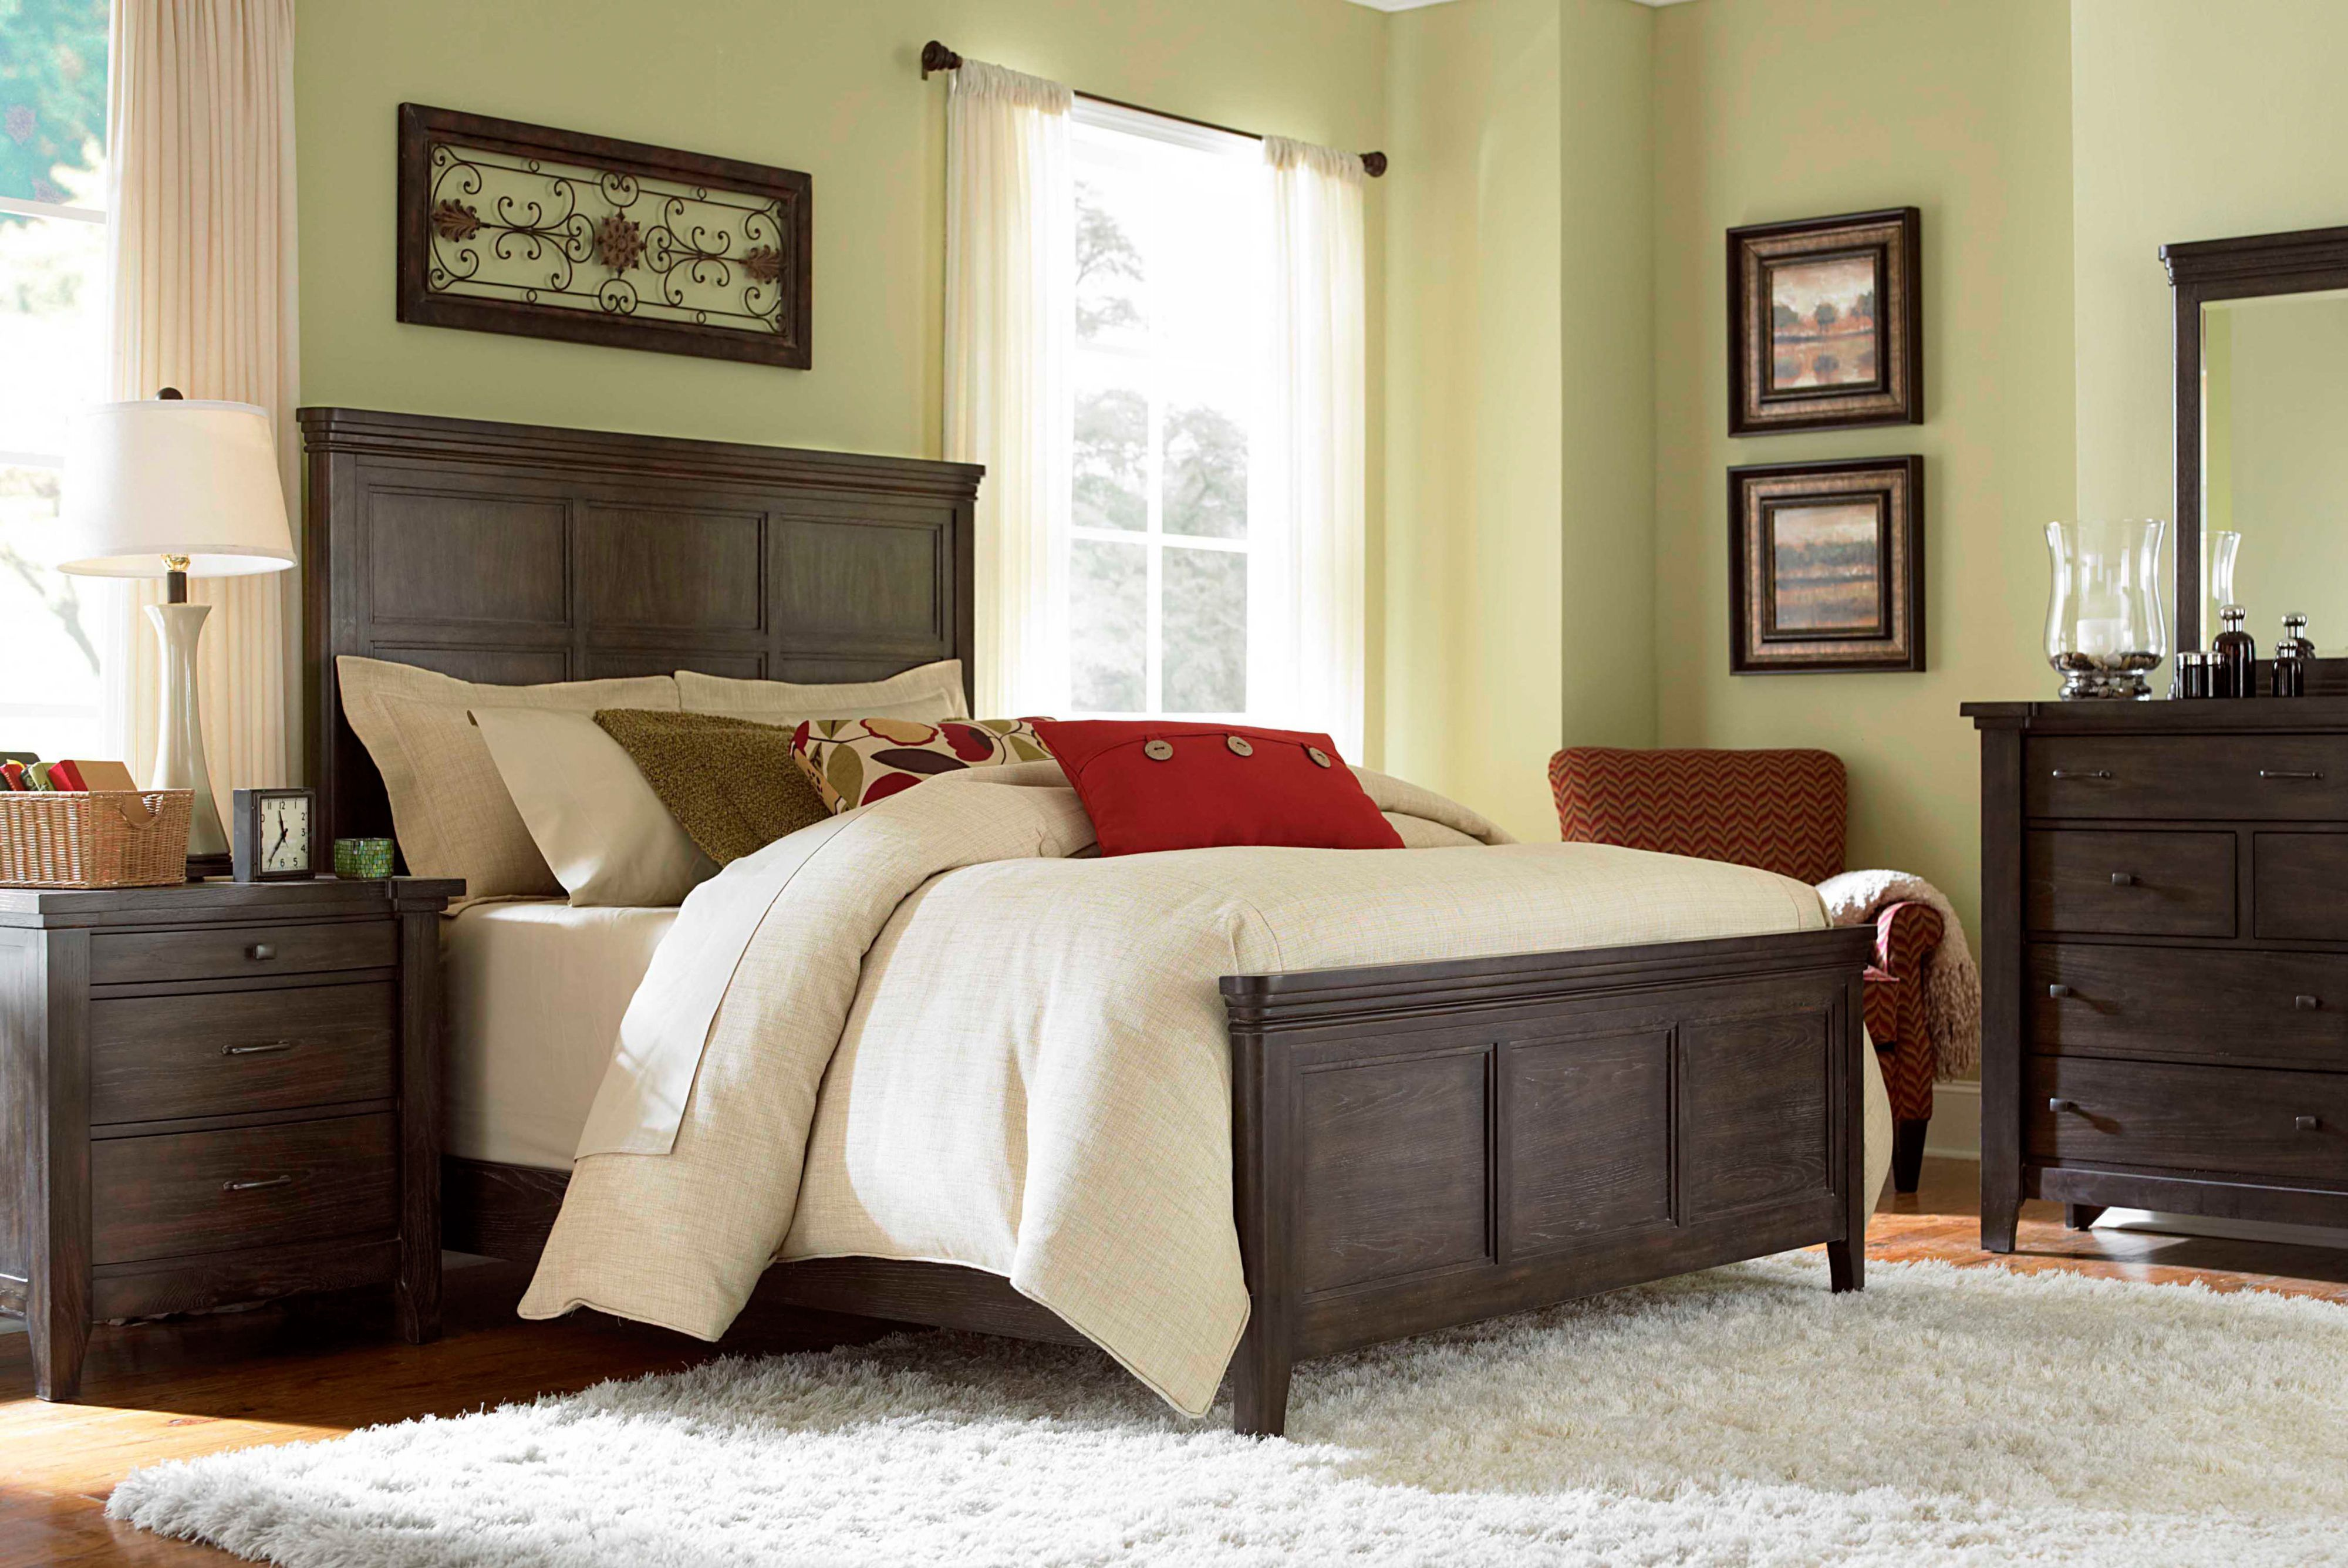 Broyhill Bedroom Furniture Magnificent One To Have Broyhill Bedroom Furniture Bedroom Furniture Design Small Room Bedroom